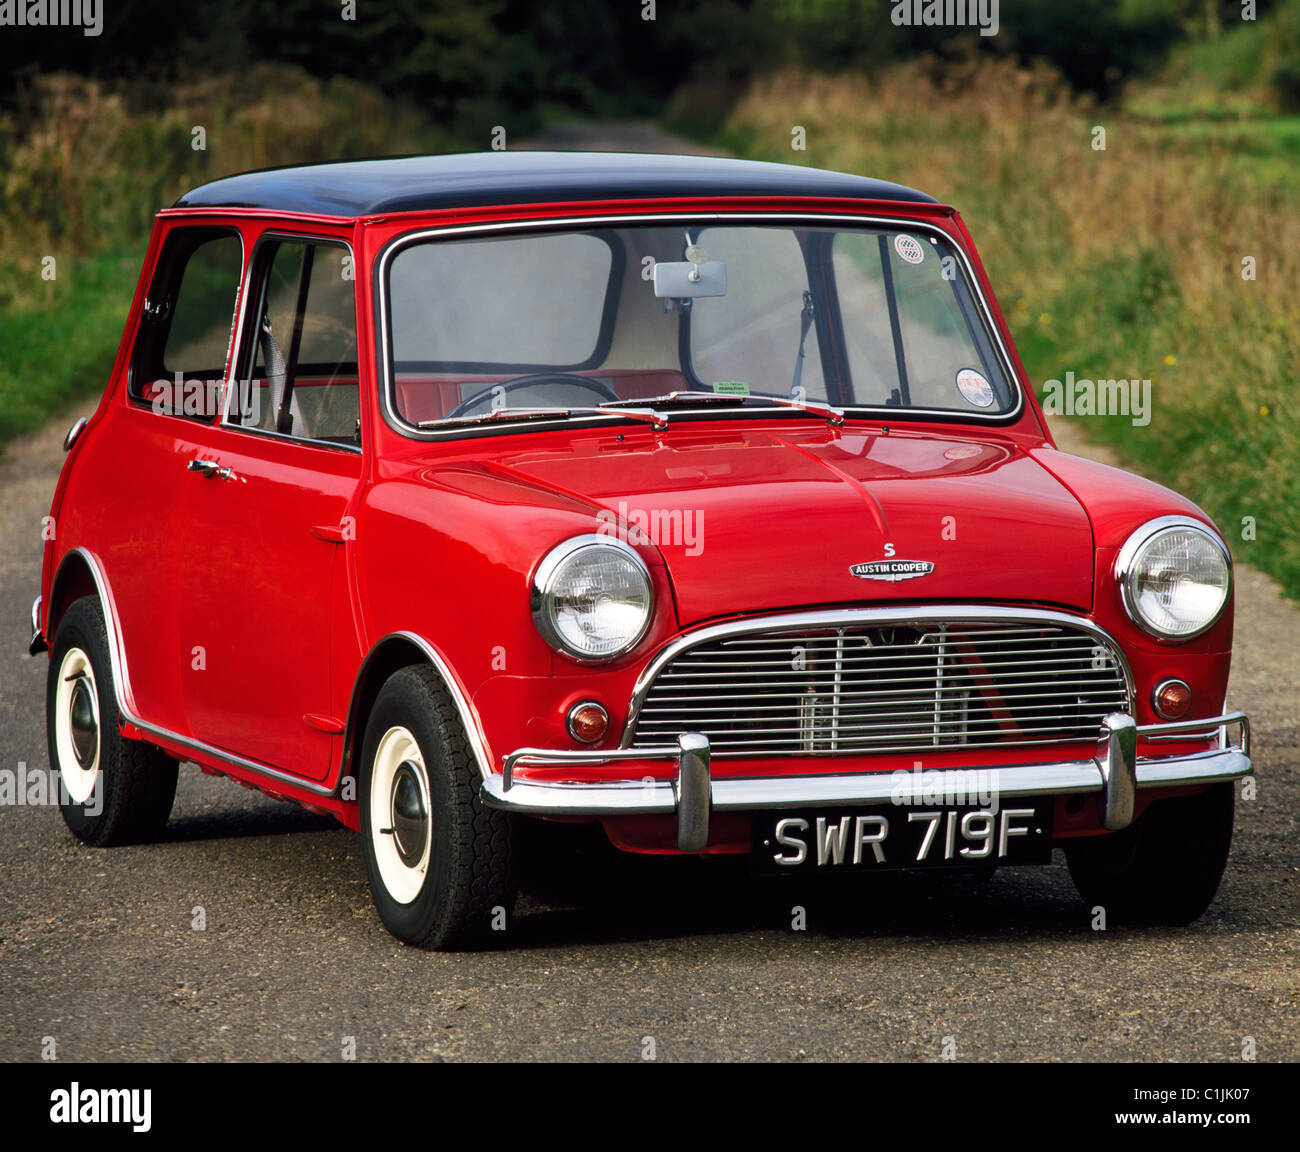 Red Mini Cooper S MKI 1275cc From 1967 Stock Photo